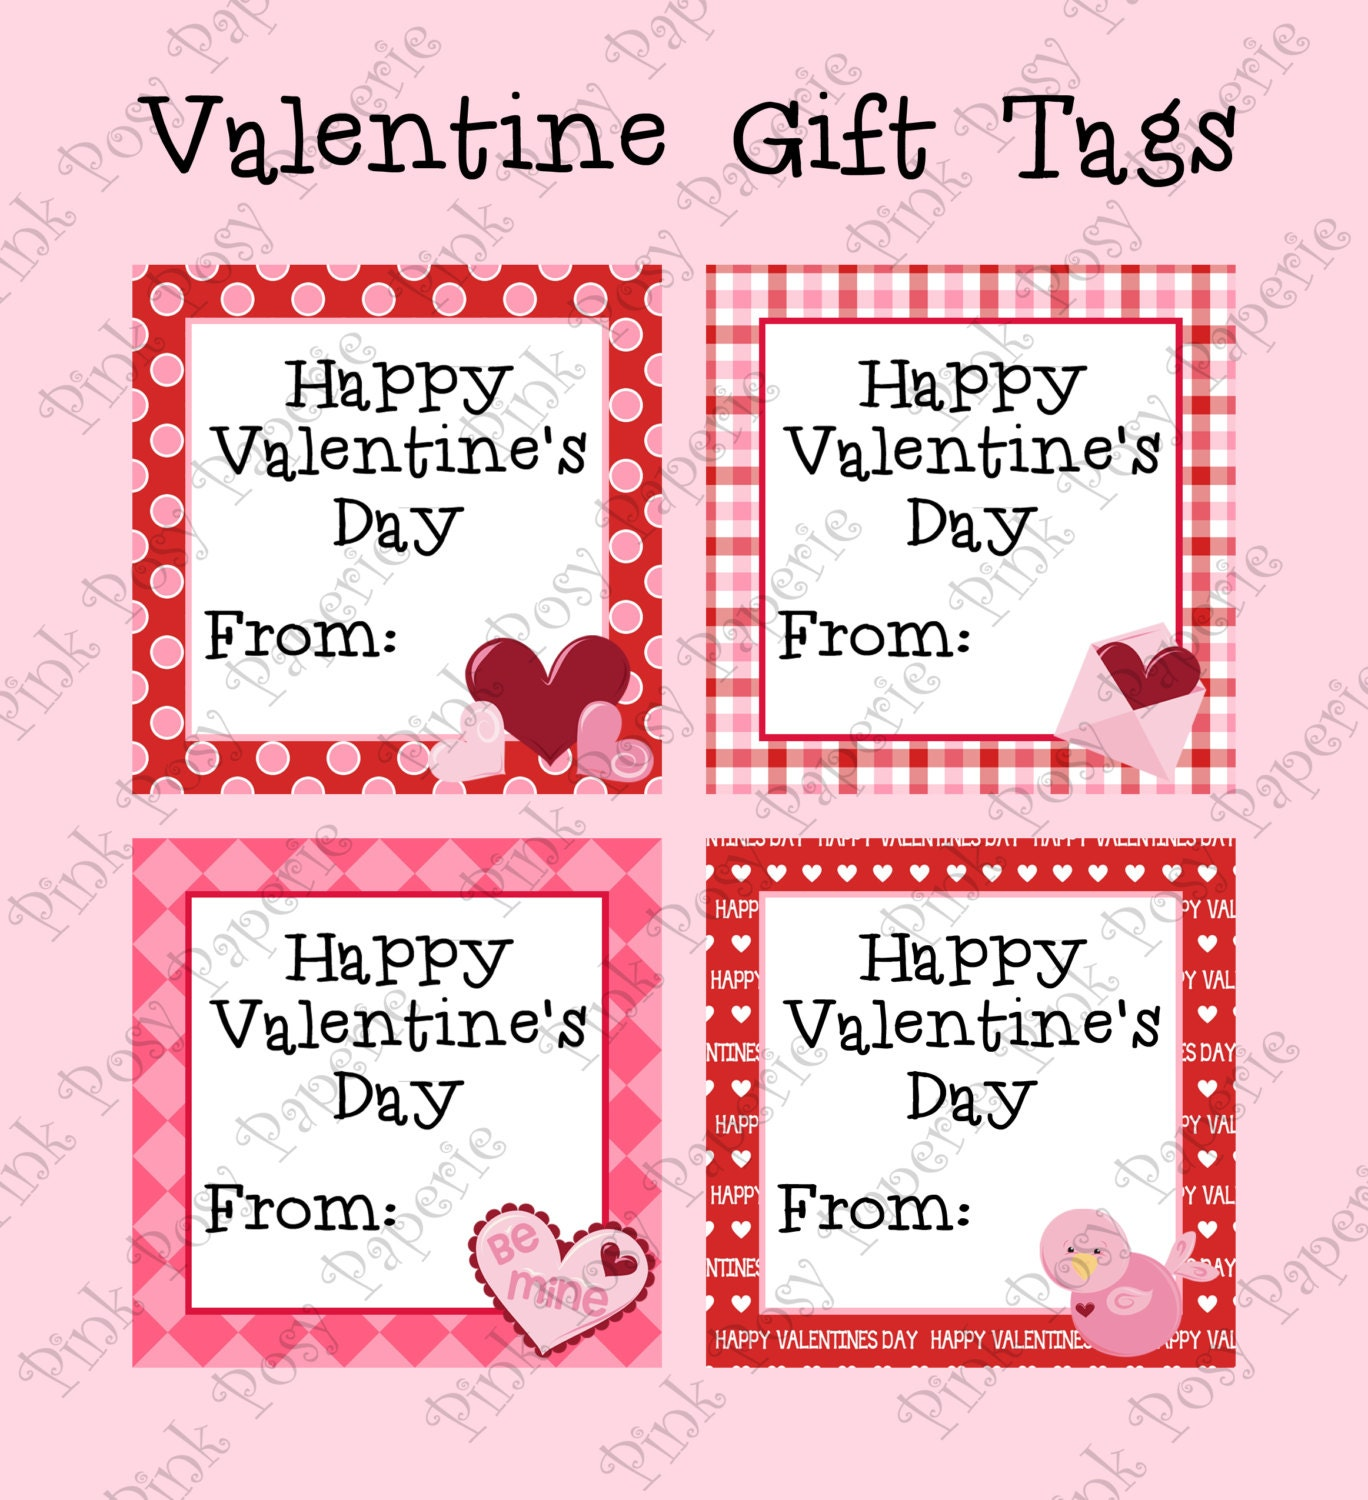 Légend image with regard to valentine gift tags printable